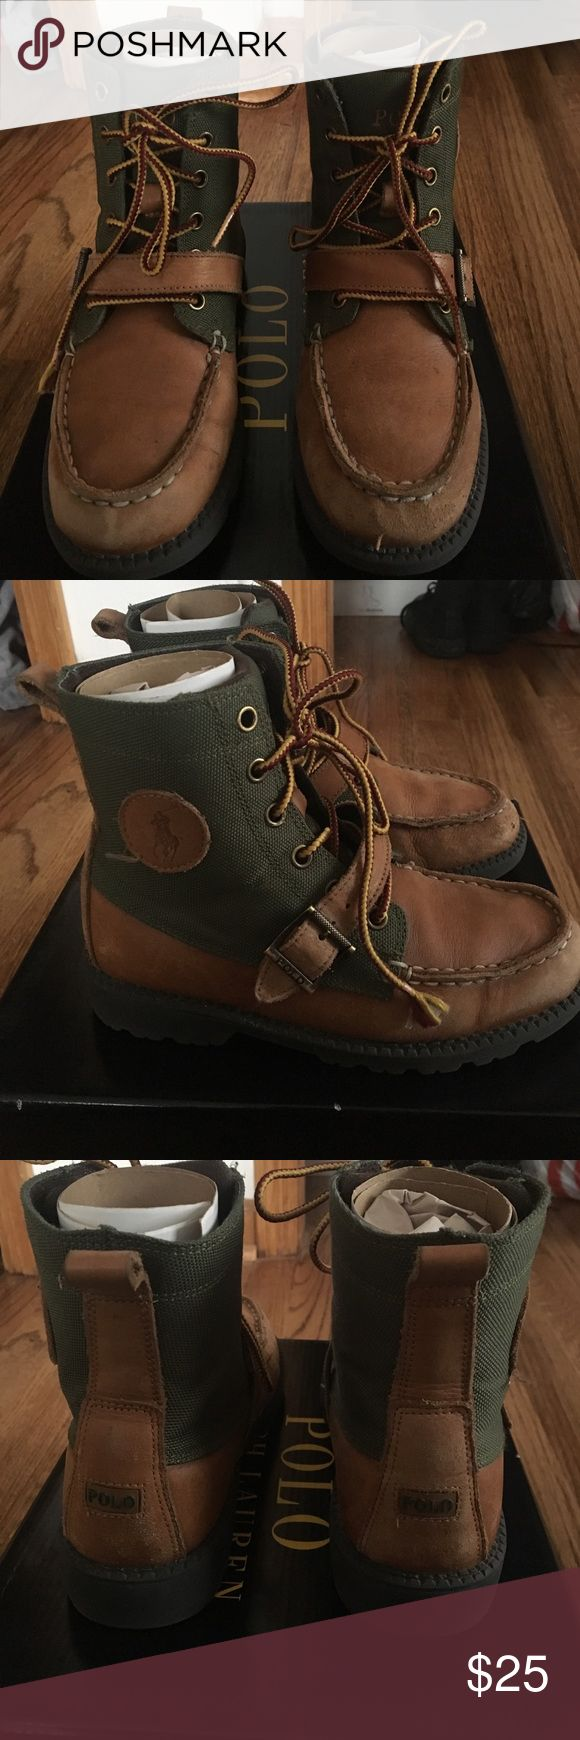 Polo Ralph Lauren Boys Leather Boots size 2 Polo boots leather and army green canvas. Worn 3 times. Come with original box. Polo by Ralph Lauren Shoes Boots